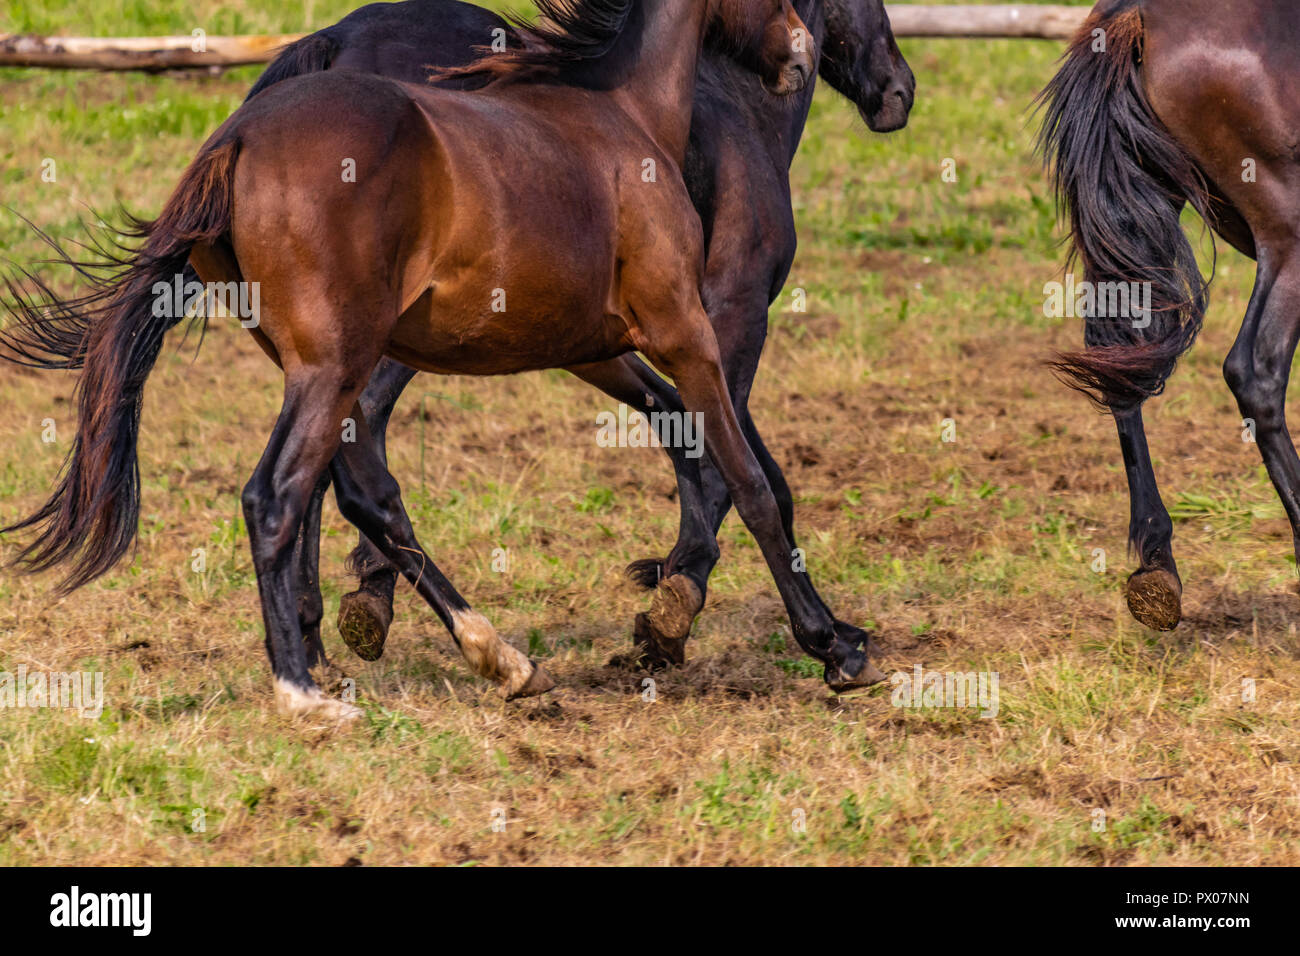 Wild horses galloping wildly in an American ranch. Details and focus on feet, grass, dust, dirt and motion blur. Sunny day, country lifestyle. - Stock Image